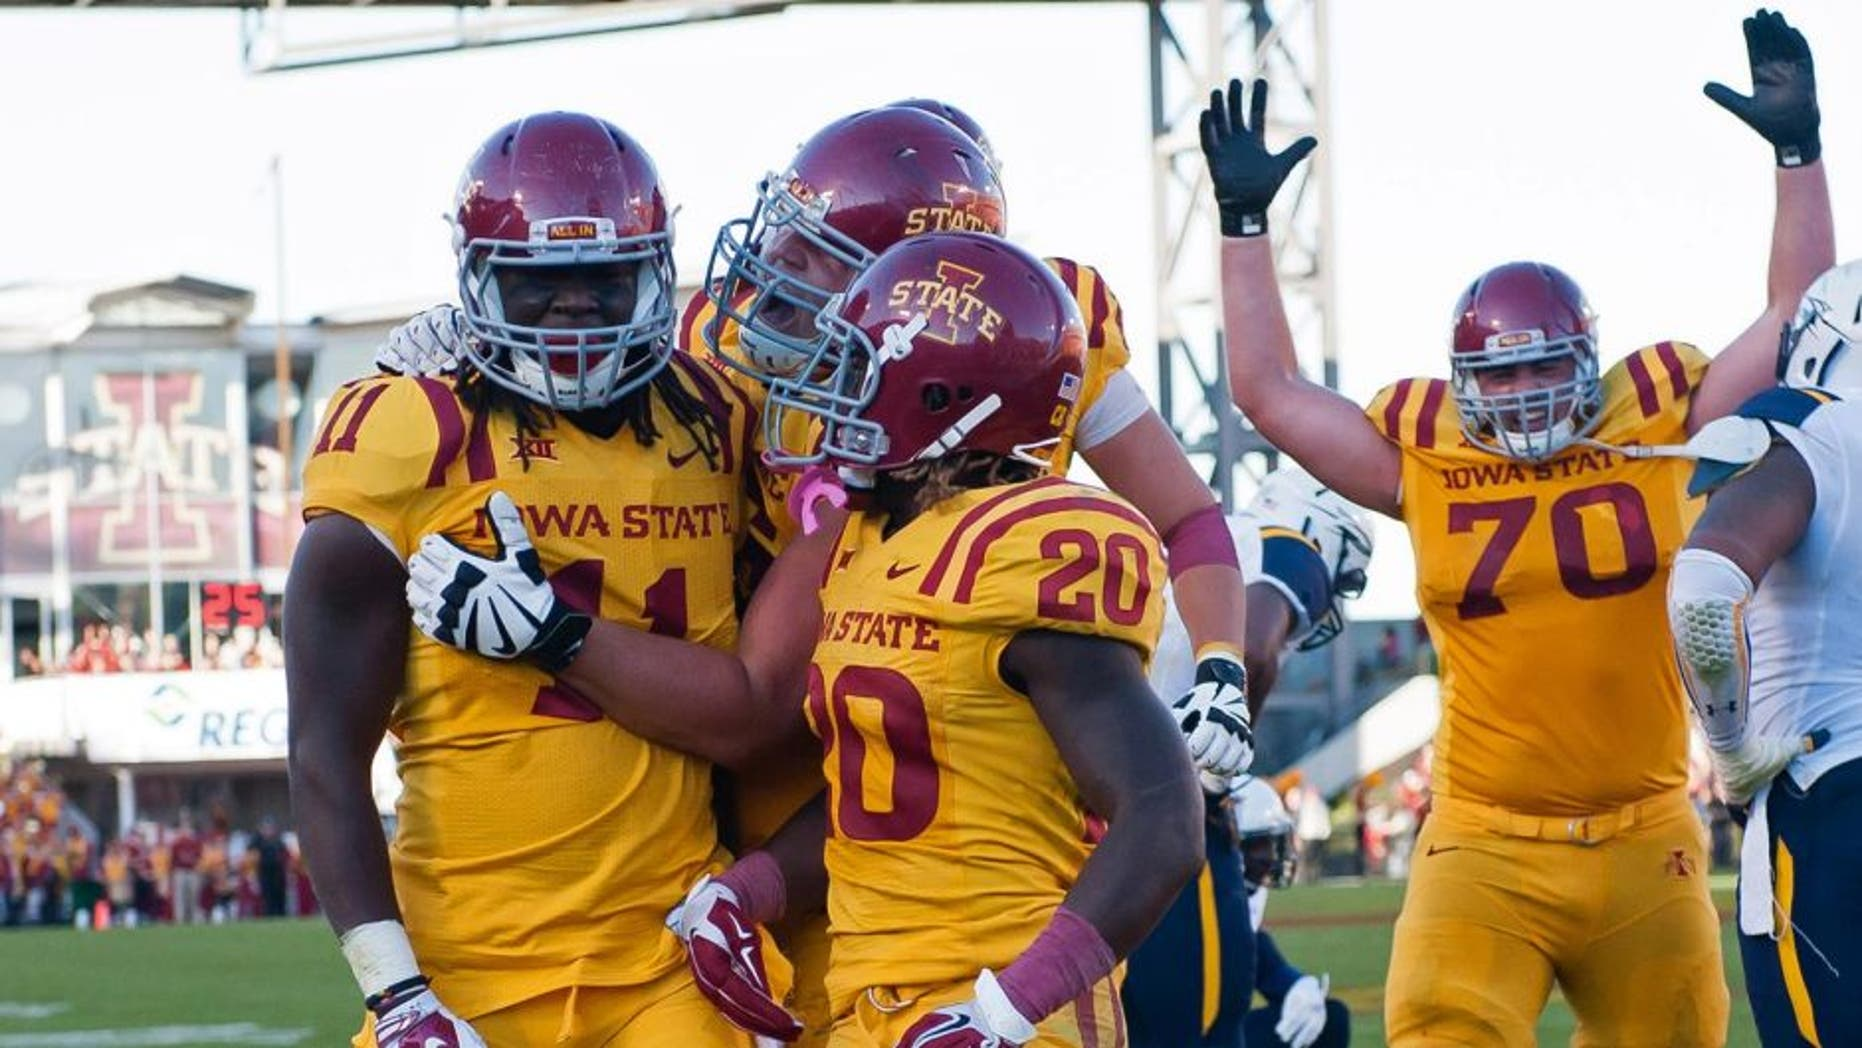 Oct 11, 2014; Ames, IA, USA; Iowa State Cyclones tight end E.J. Bibbs (11) celebrates with running back DeVondrick Nealy (20) and offensive lineman Daniel Burton (70) after scoring against the Toledo Rockets at Jack Trice Stadium. Iowa State defeated Toledo 37-30. Mandatory Credit: Steven Branscombe-USA TODAY Sports